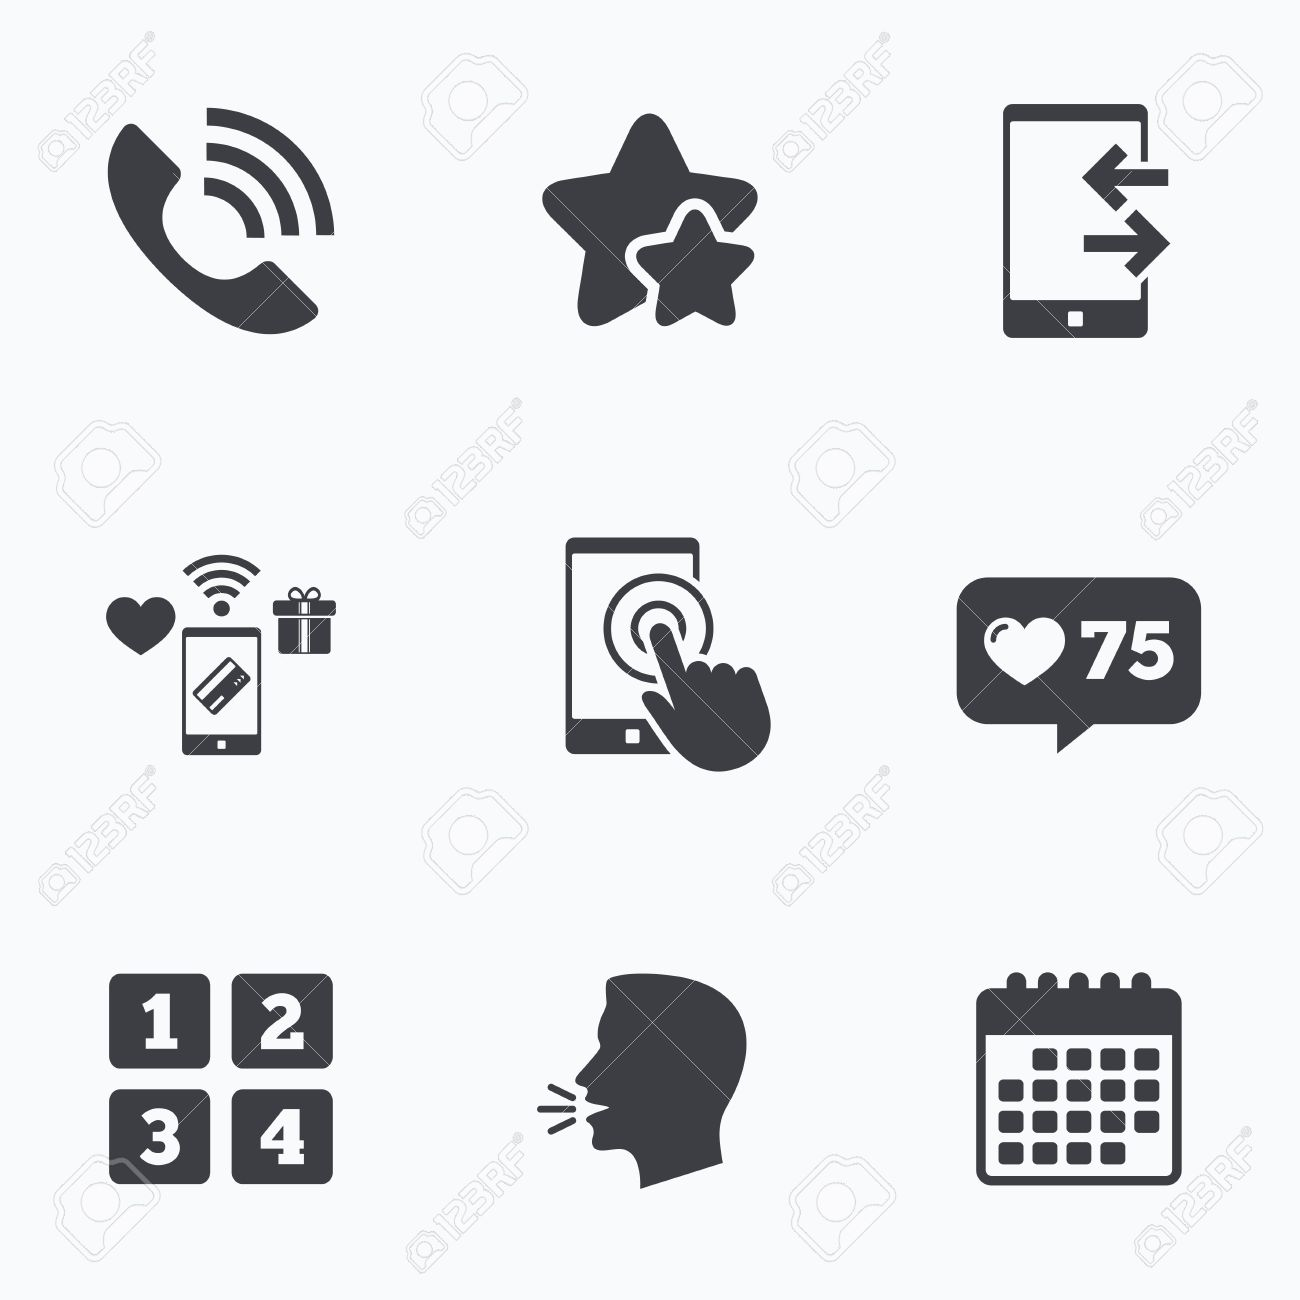 Phone icons touch screen smartphone sign call center support phone icons touch screen smartphone sign call center support symbol cellphone keyboard symbol biocorpaavc